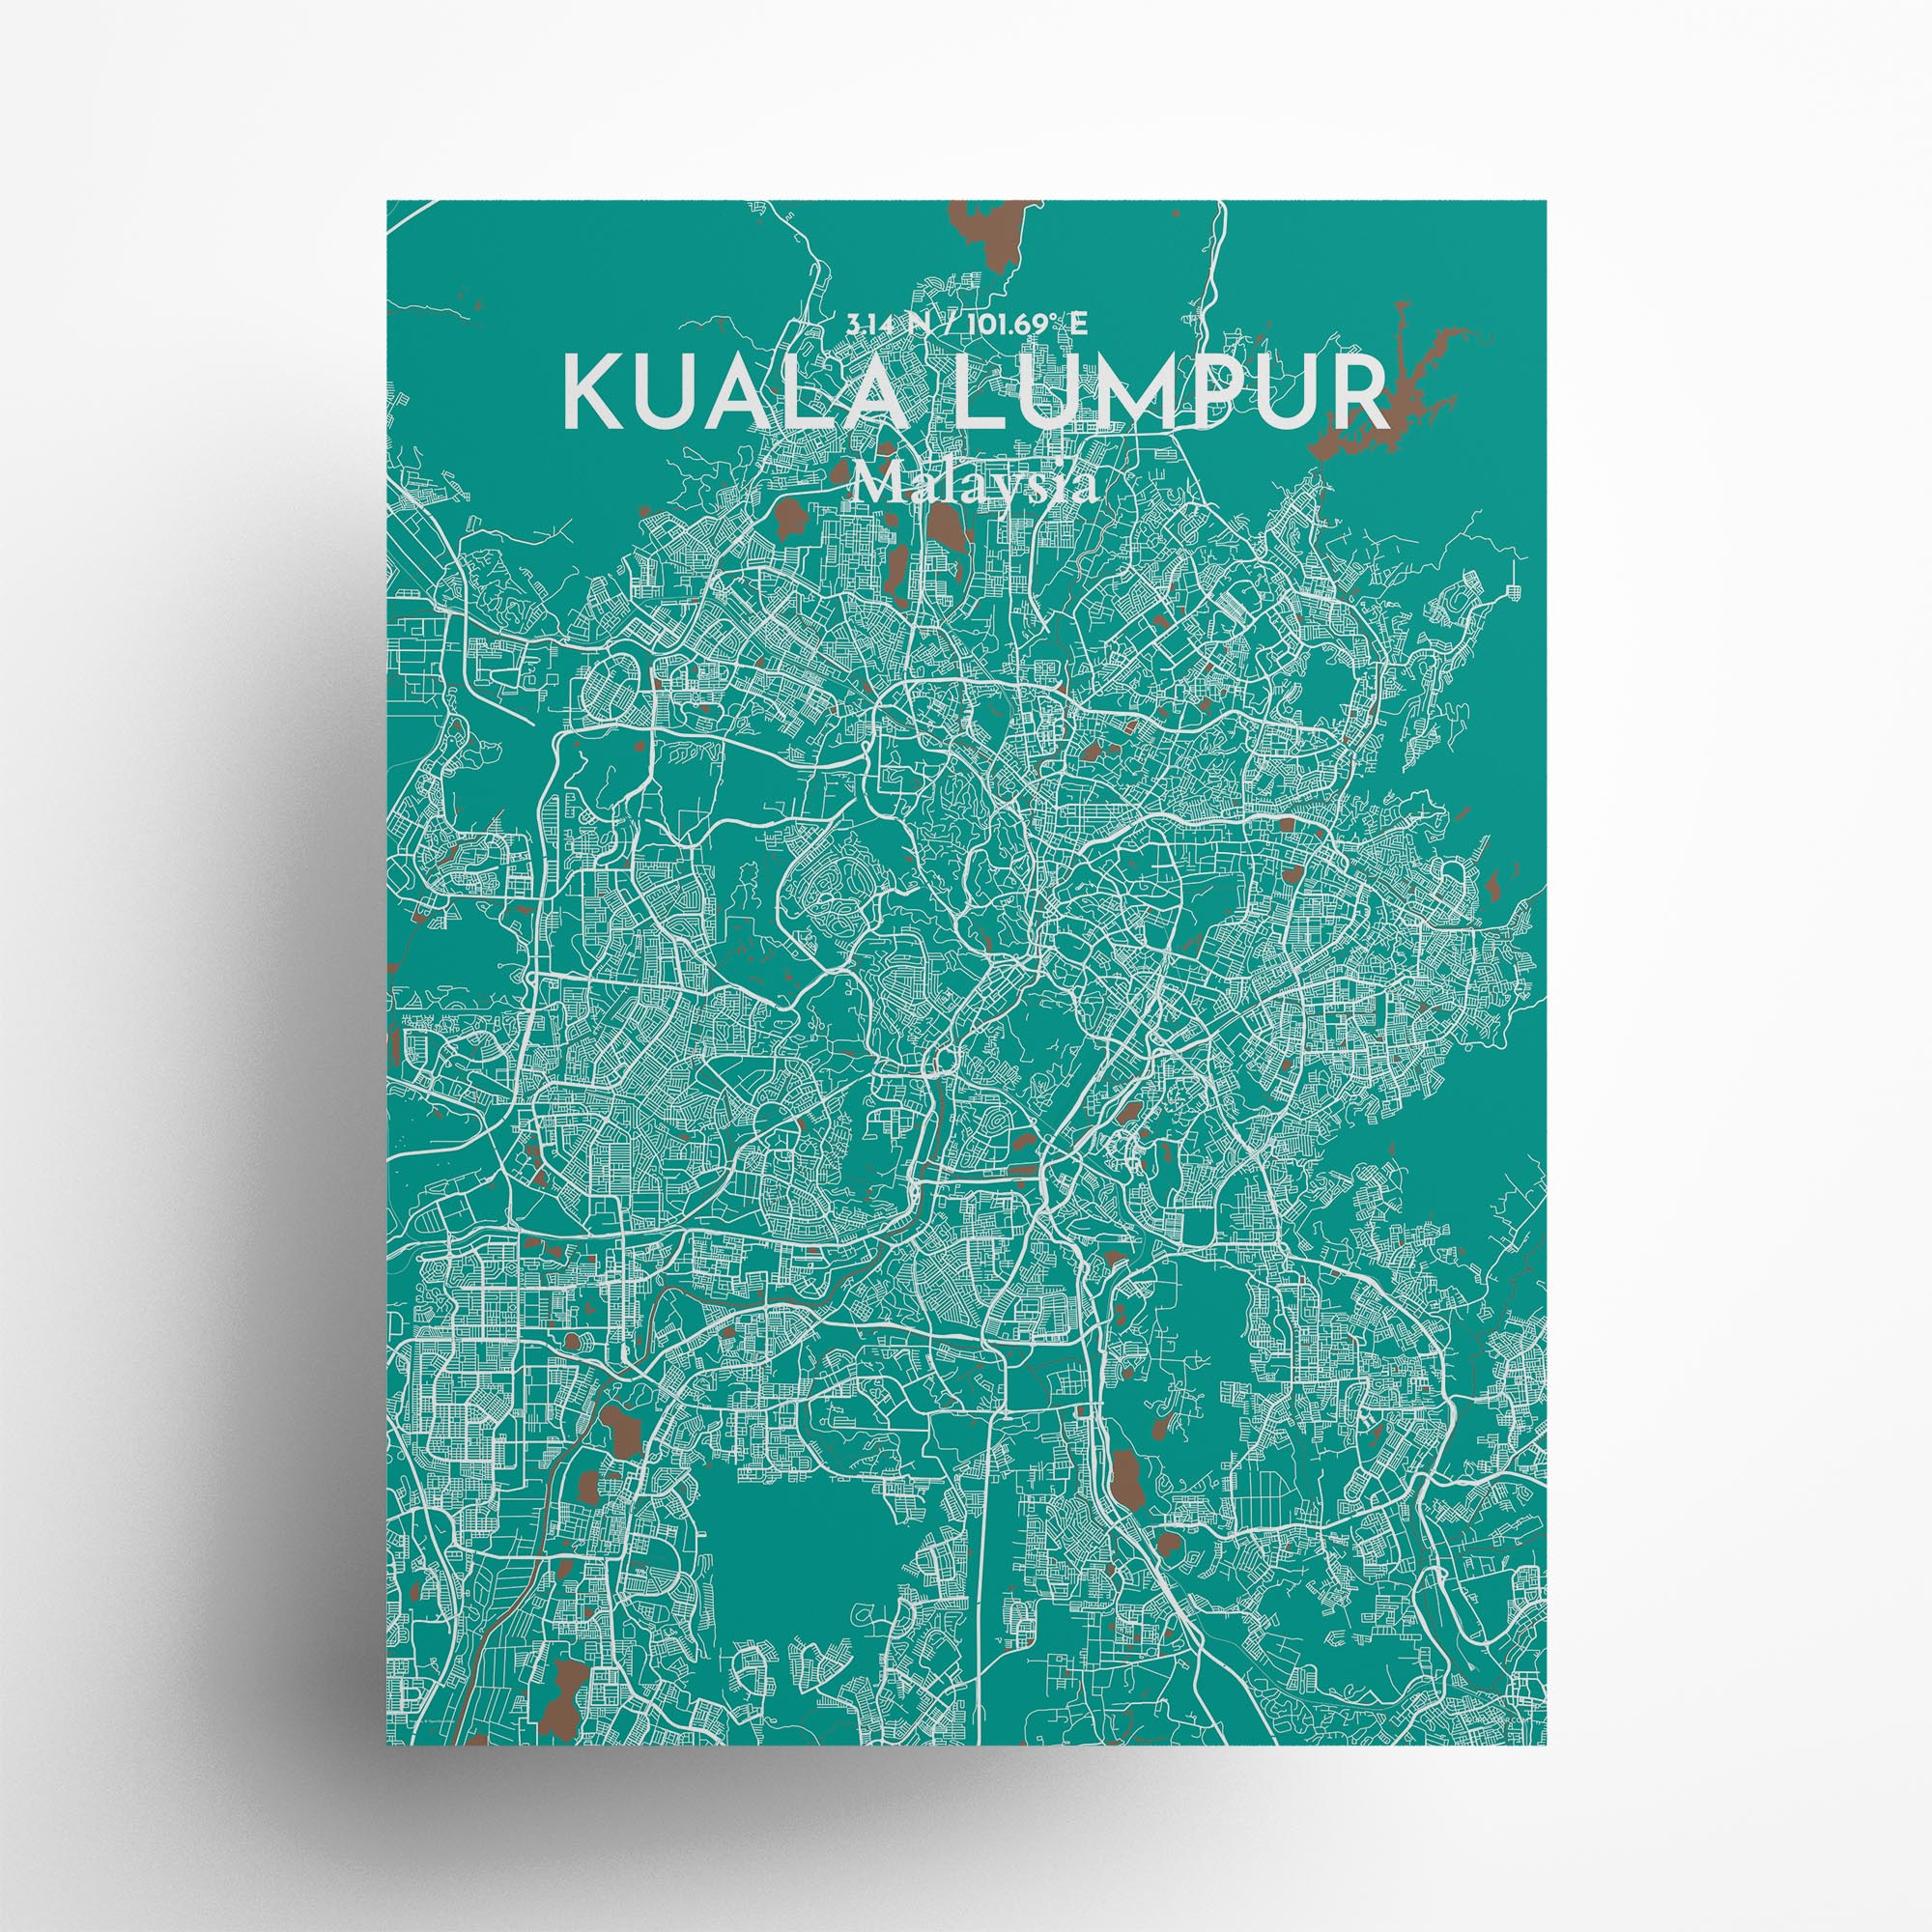 "Kuala Lumpur city map poster in Nature of size 18"" x 24"""